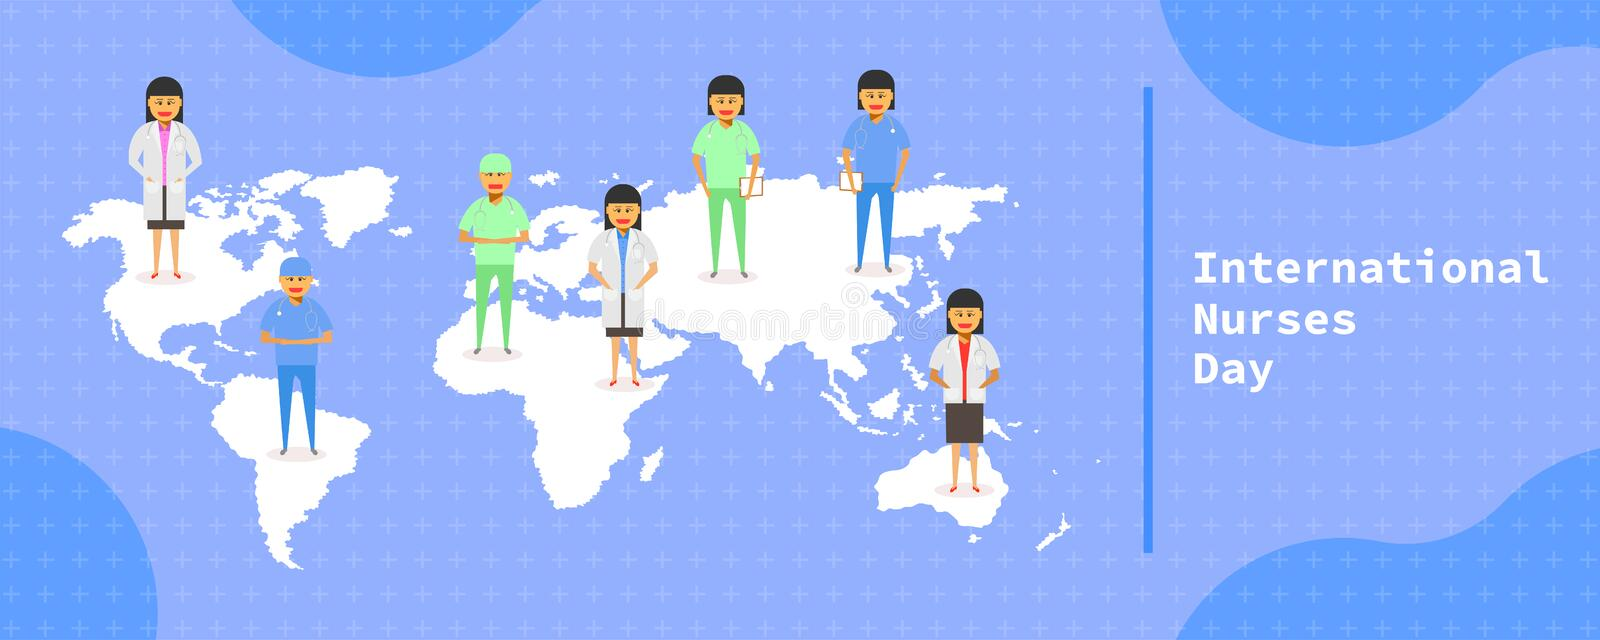 12 may. international nurses day. female doctor group stand on earth map different mark point country. vector illustration ep10. 12 may. international nurses day vector illustration